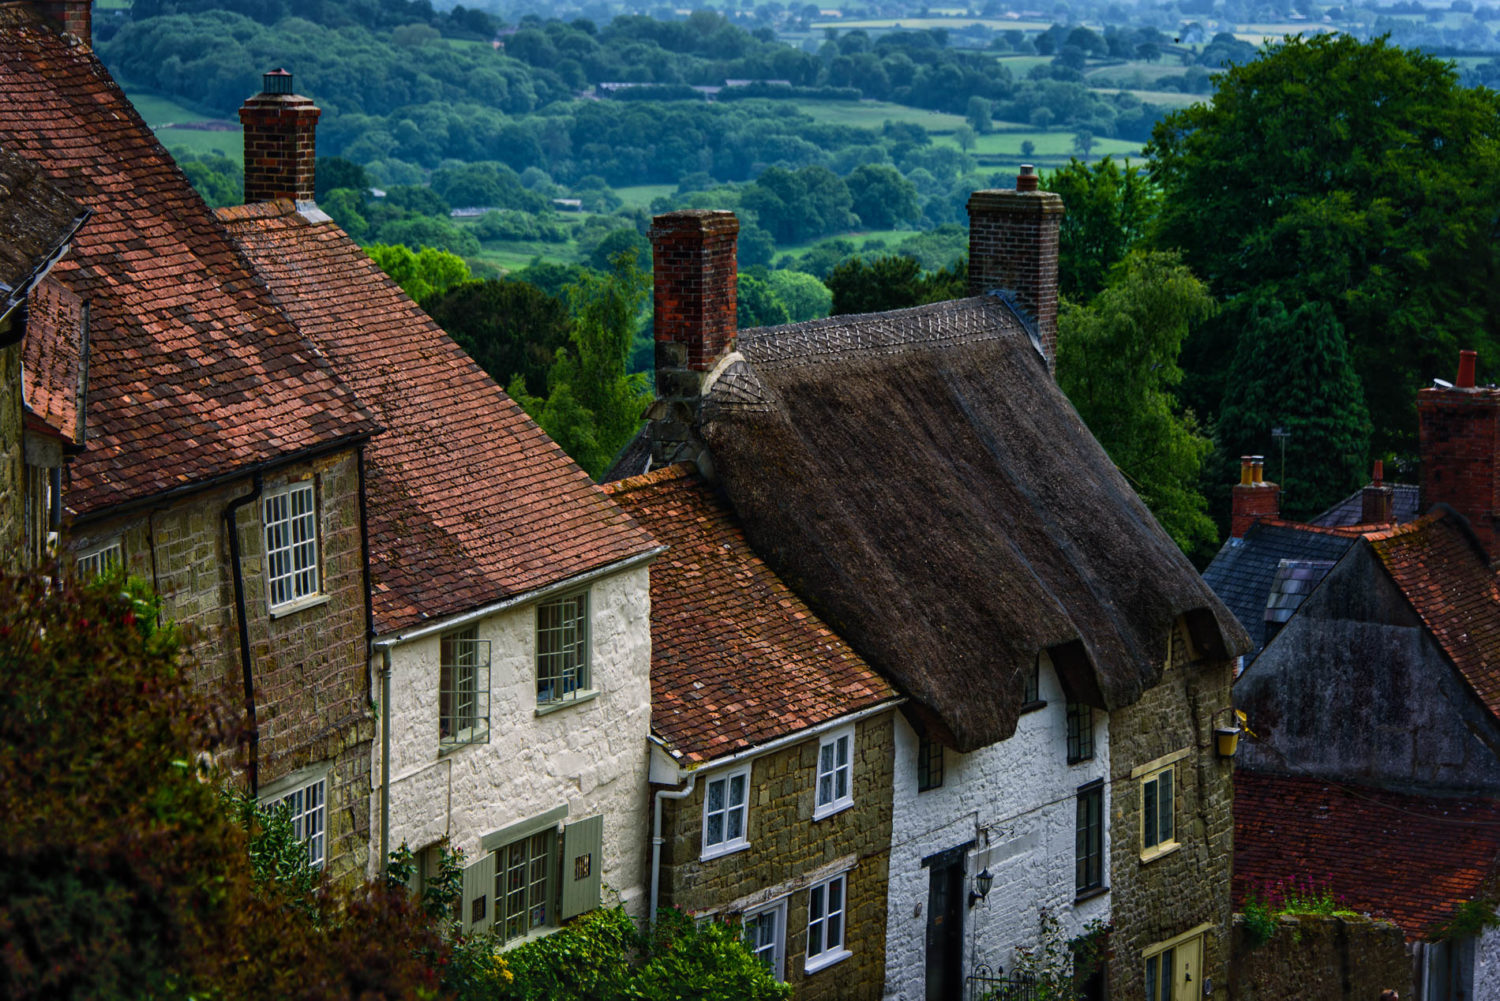 The beautiful village of Shaftesbury in Dorset, England.